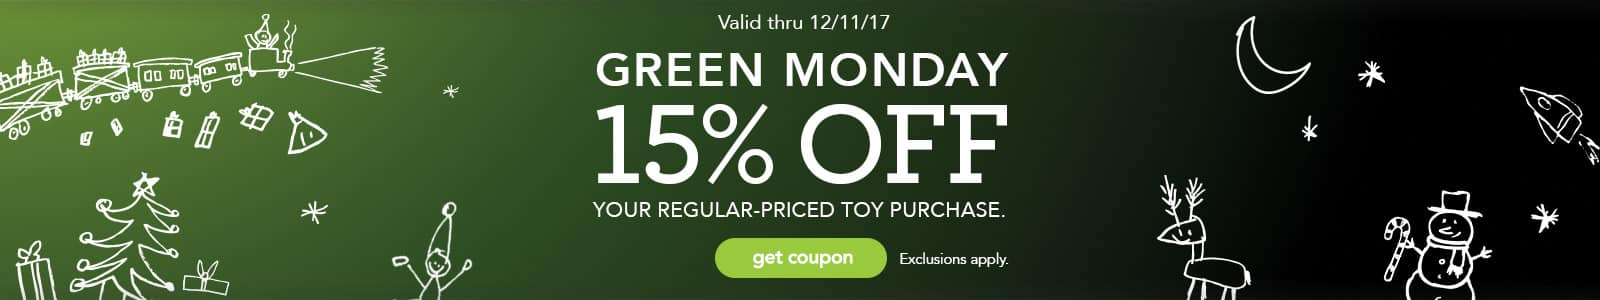 ToysRUs 15% off Regular Priced Toy Purchase with their Green Monday Coupon valid 12/10-12/12